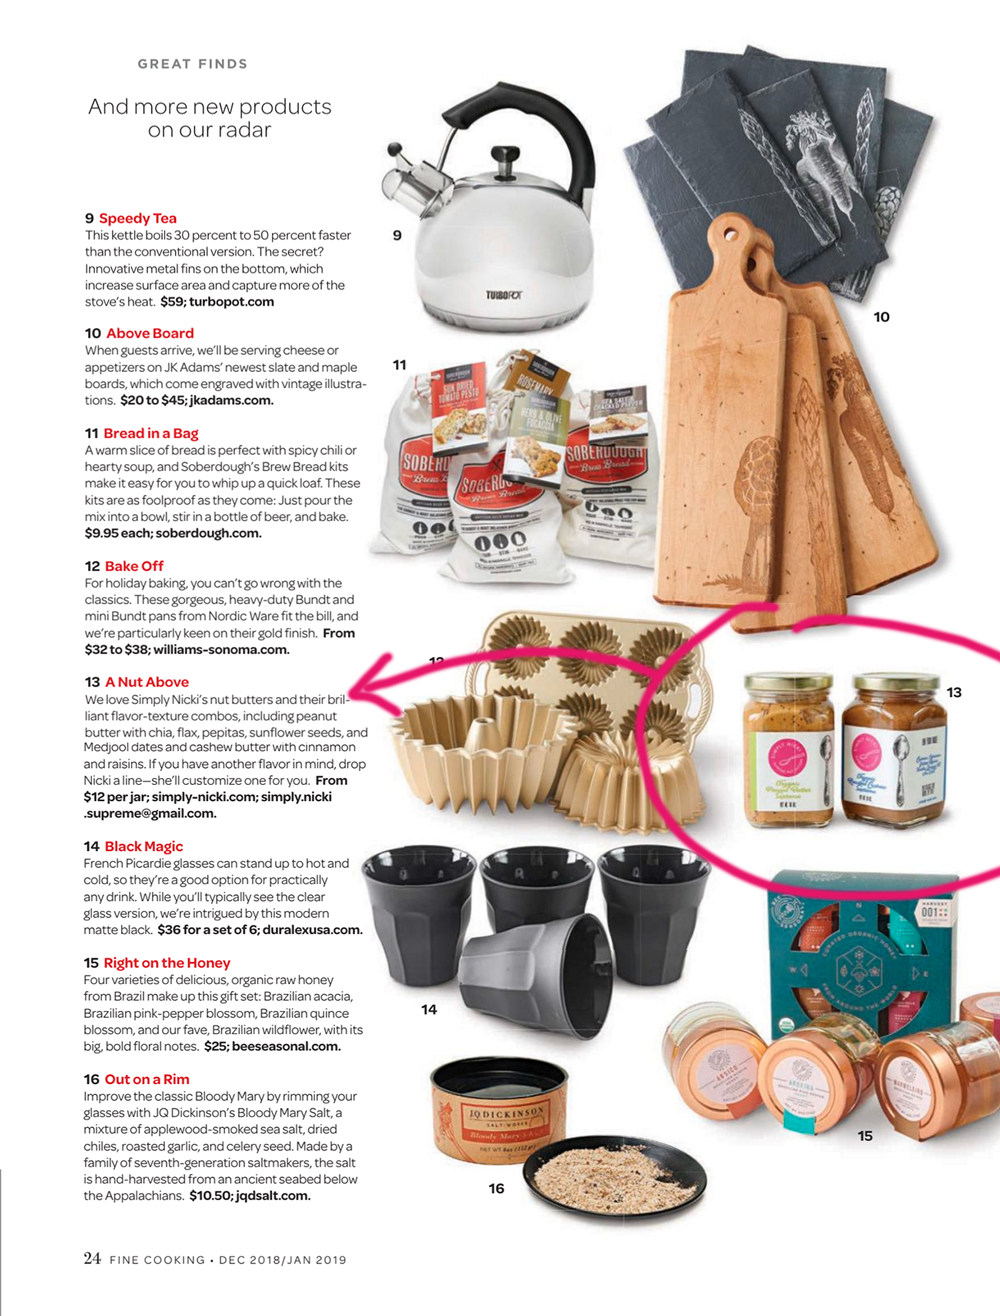 Simply Nicki Supreme Nut Butters appearing in Fine Cooking Magazine's Dec/Jan 2019 Issue